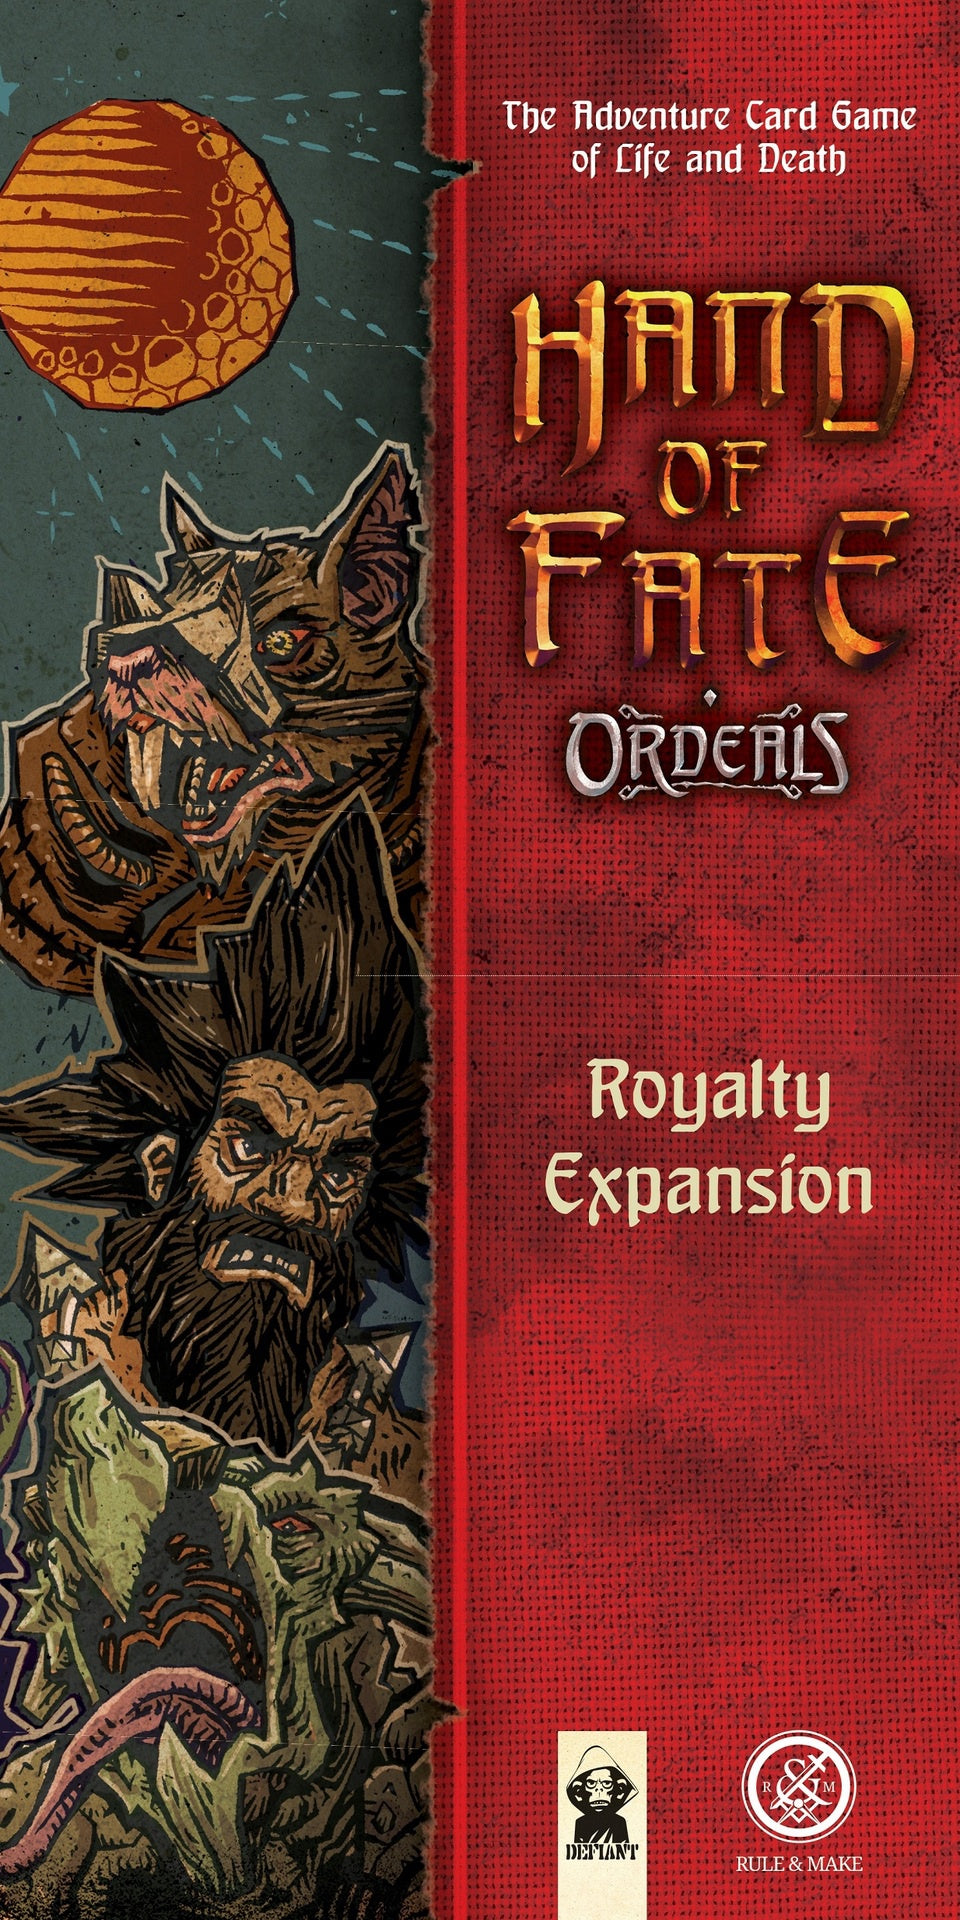 Hand of Fate Ordeals Royalty Expansion | Guf